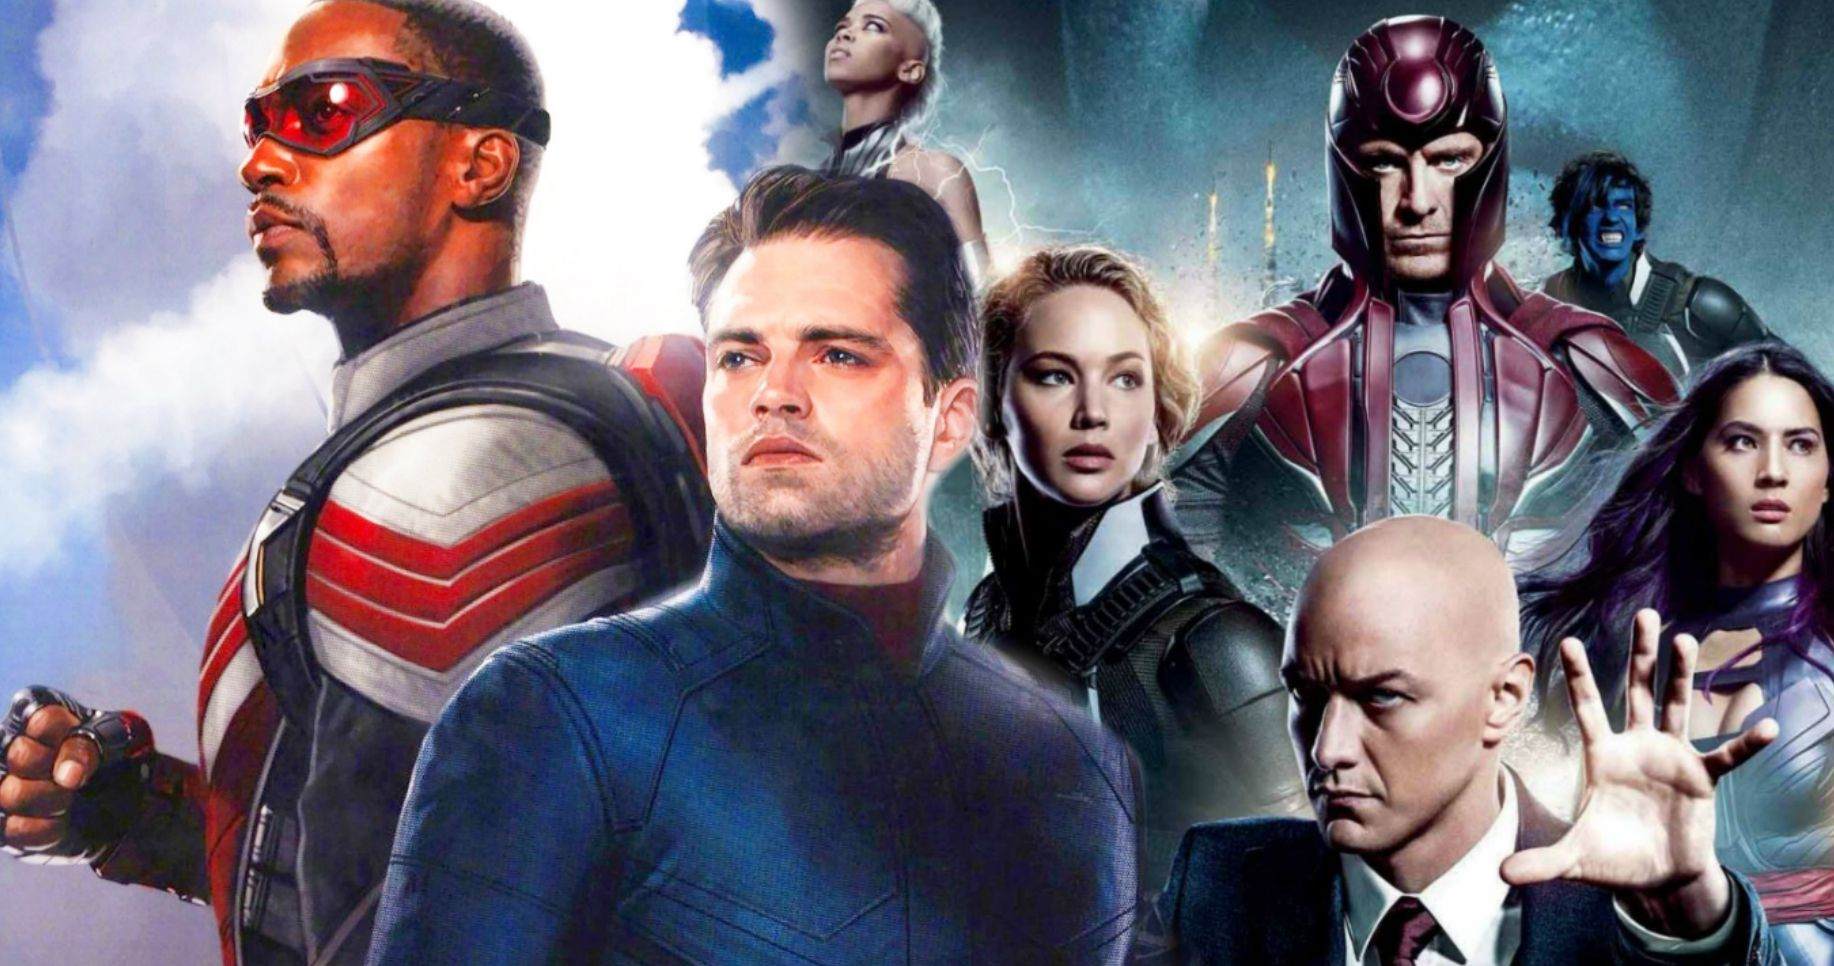 The Falcon And The Winter Soldier Set Photos Tease X Men Connection On Disney Marvel Studios Is Currently Shoot Winter Soldier New Disney Shows Disney Plus